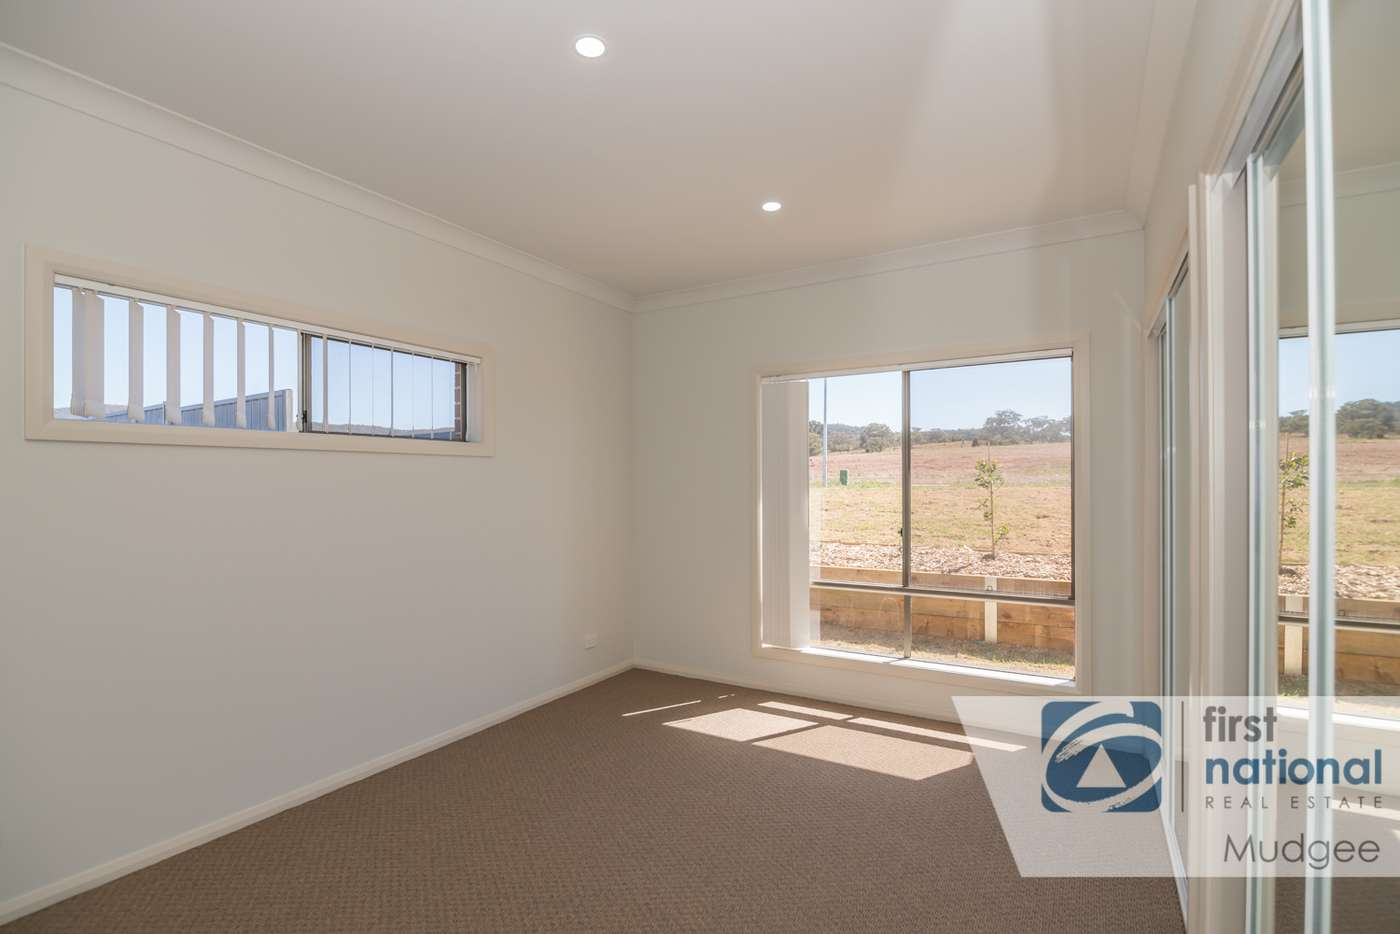 Fifth view of Homely house listing, 11 Hosking Street, Mudgee NSW 2850